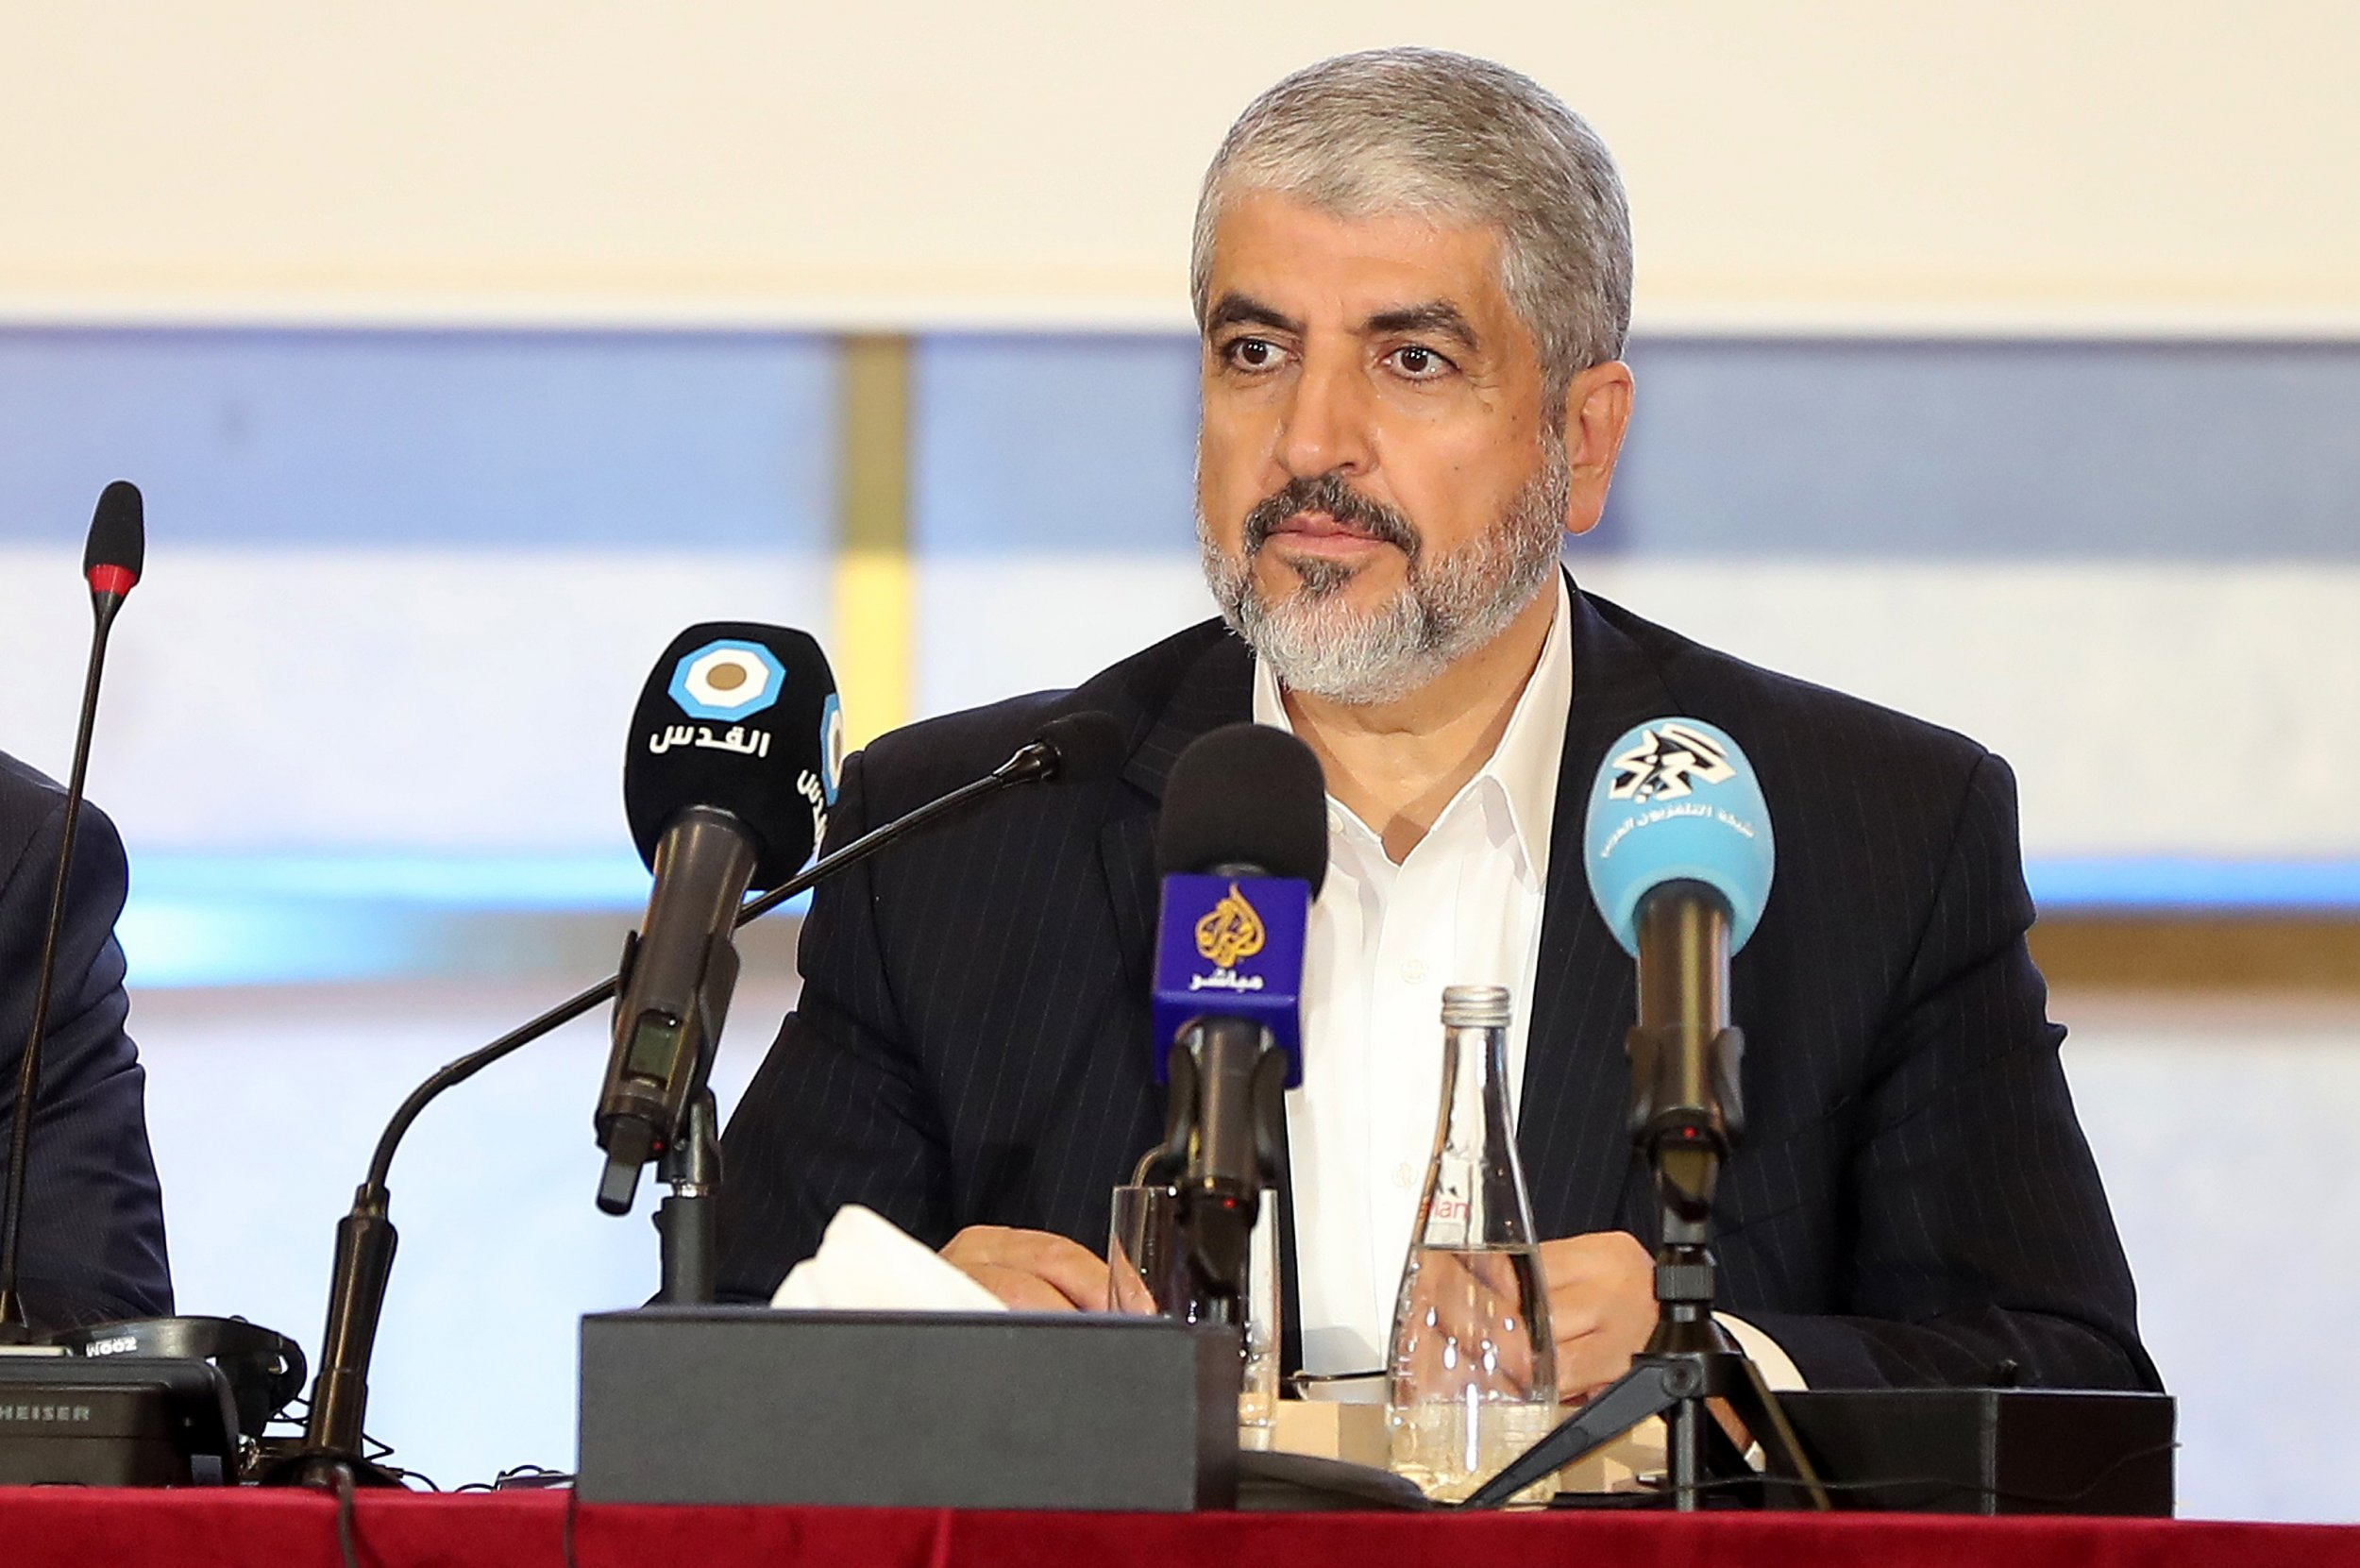 Former Hamas Political Chief Meshaal